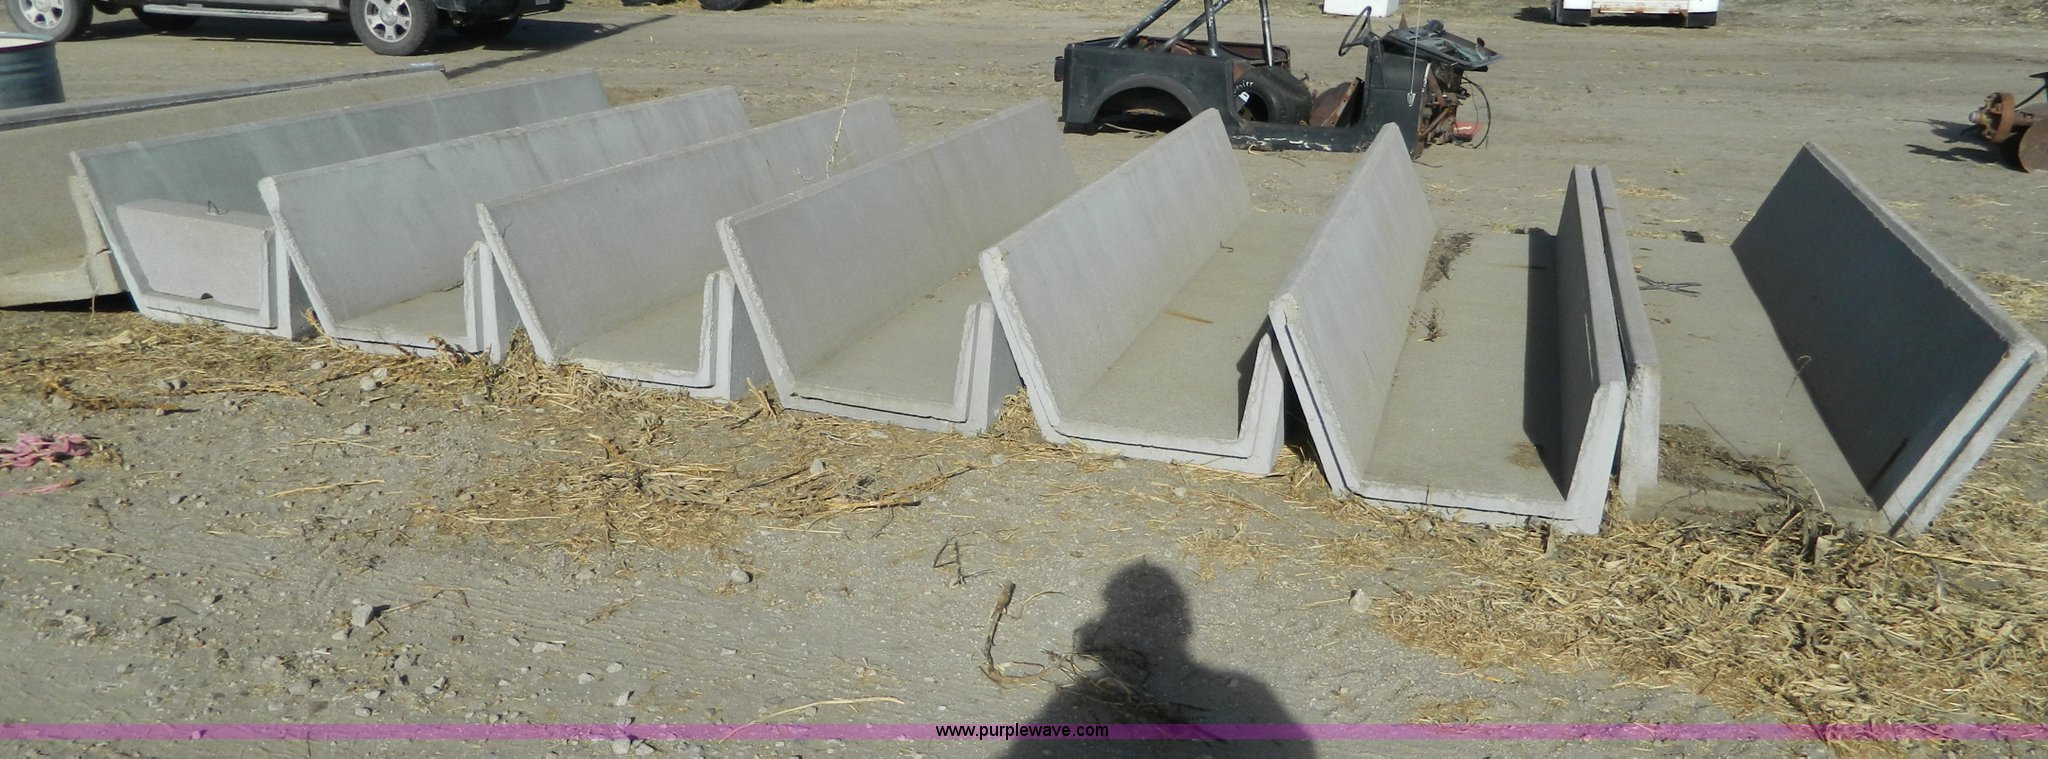 9 Concrete Fence Line Feed Bunks Item Ad9937 Sold